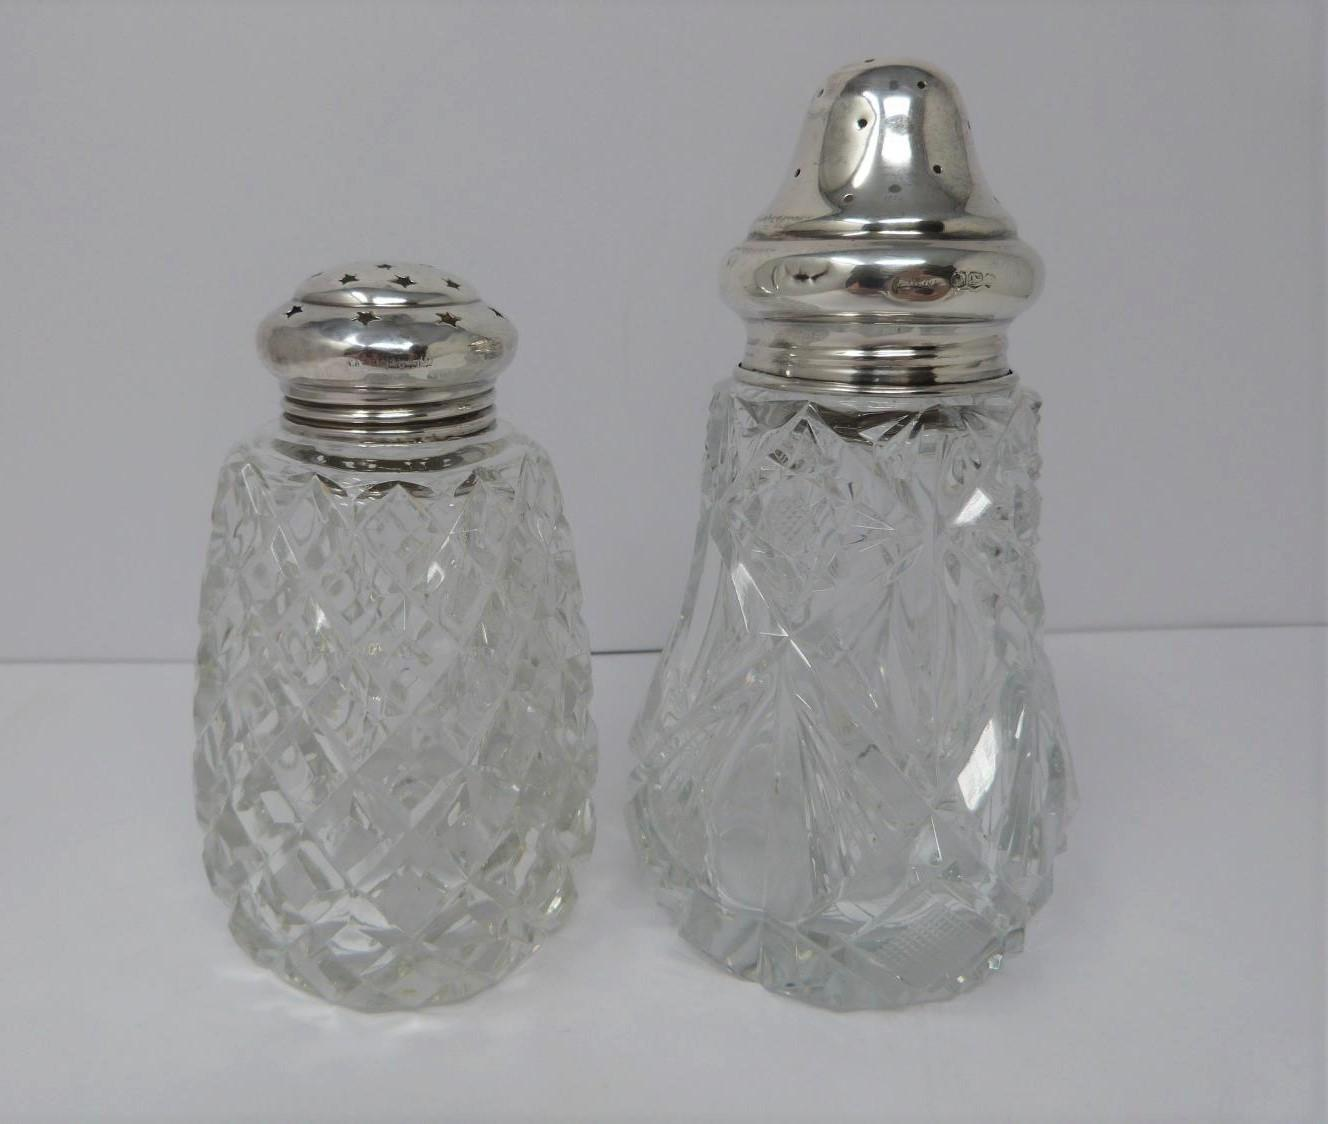 Two silver and cut glass sugar sifters, two silver pierced dishes and a silver engraved napkin ring, - Image 2 of 7